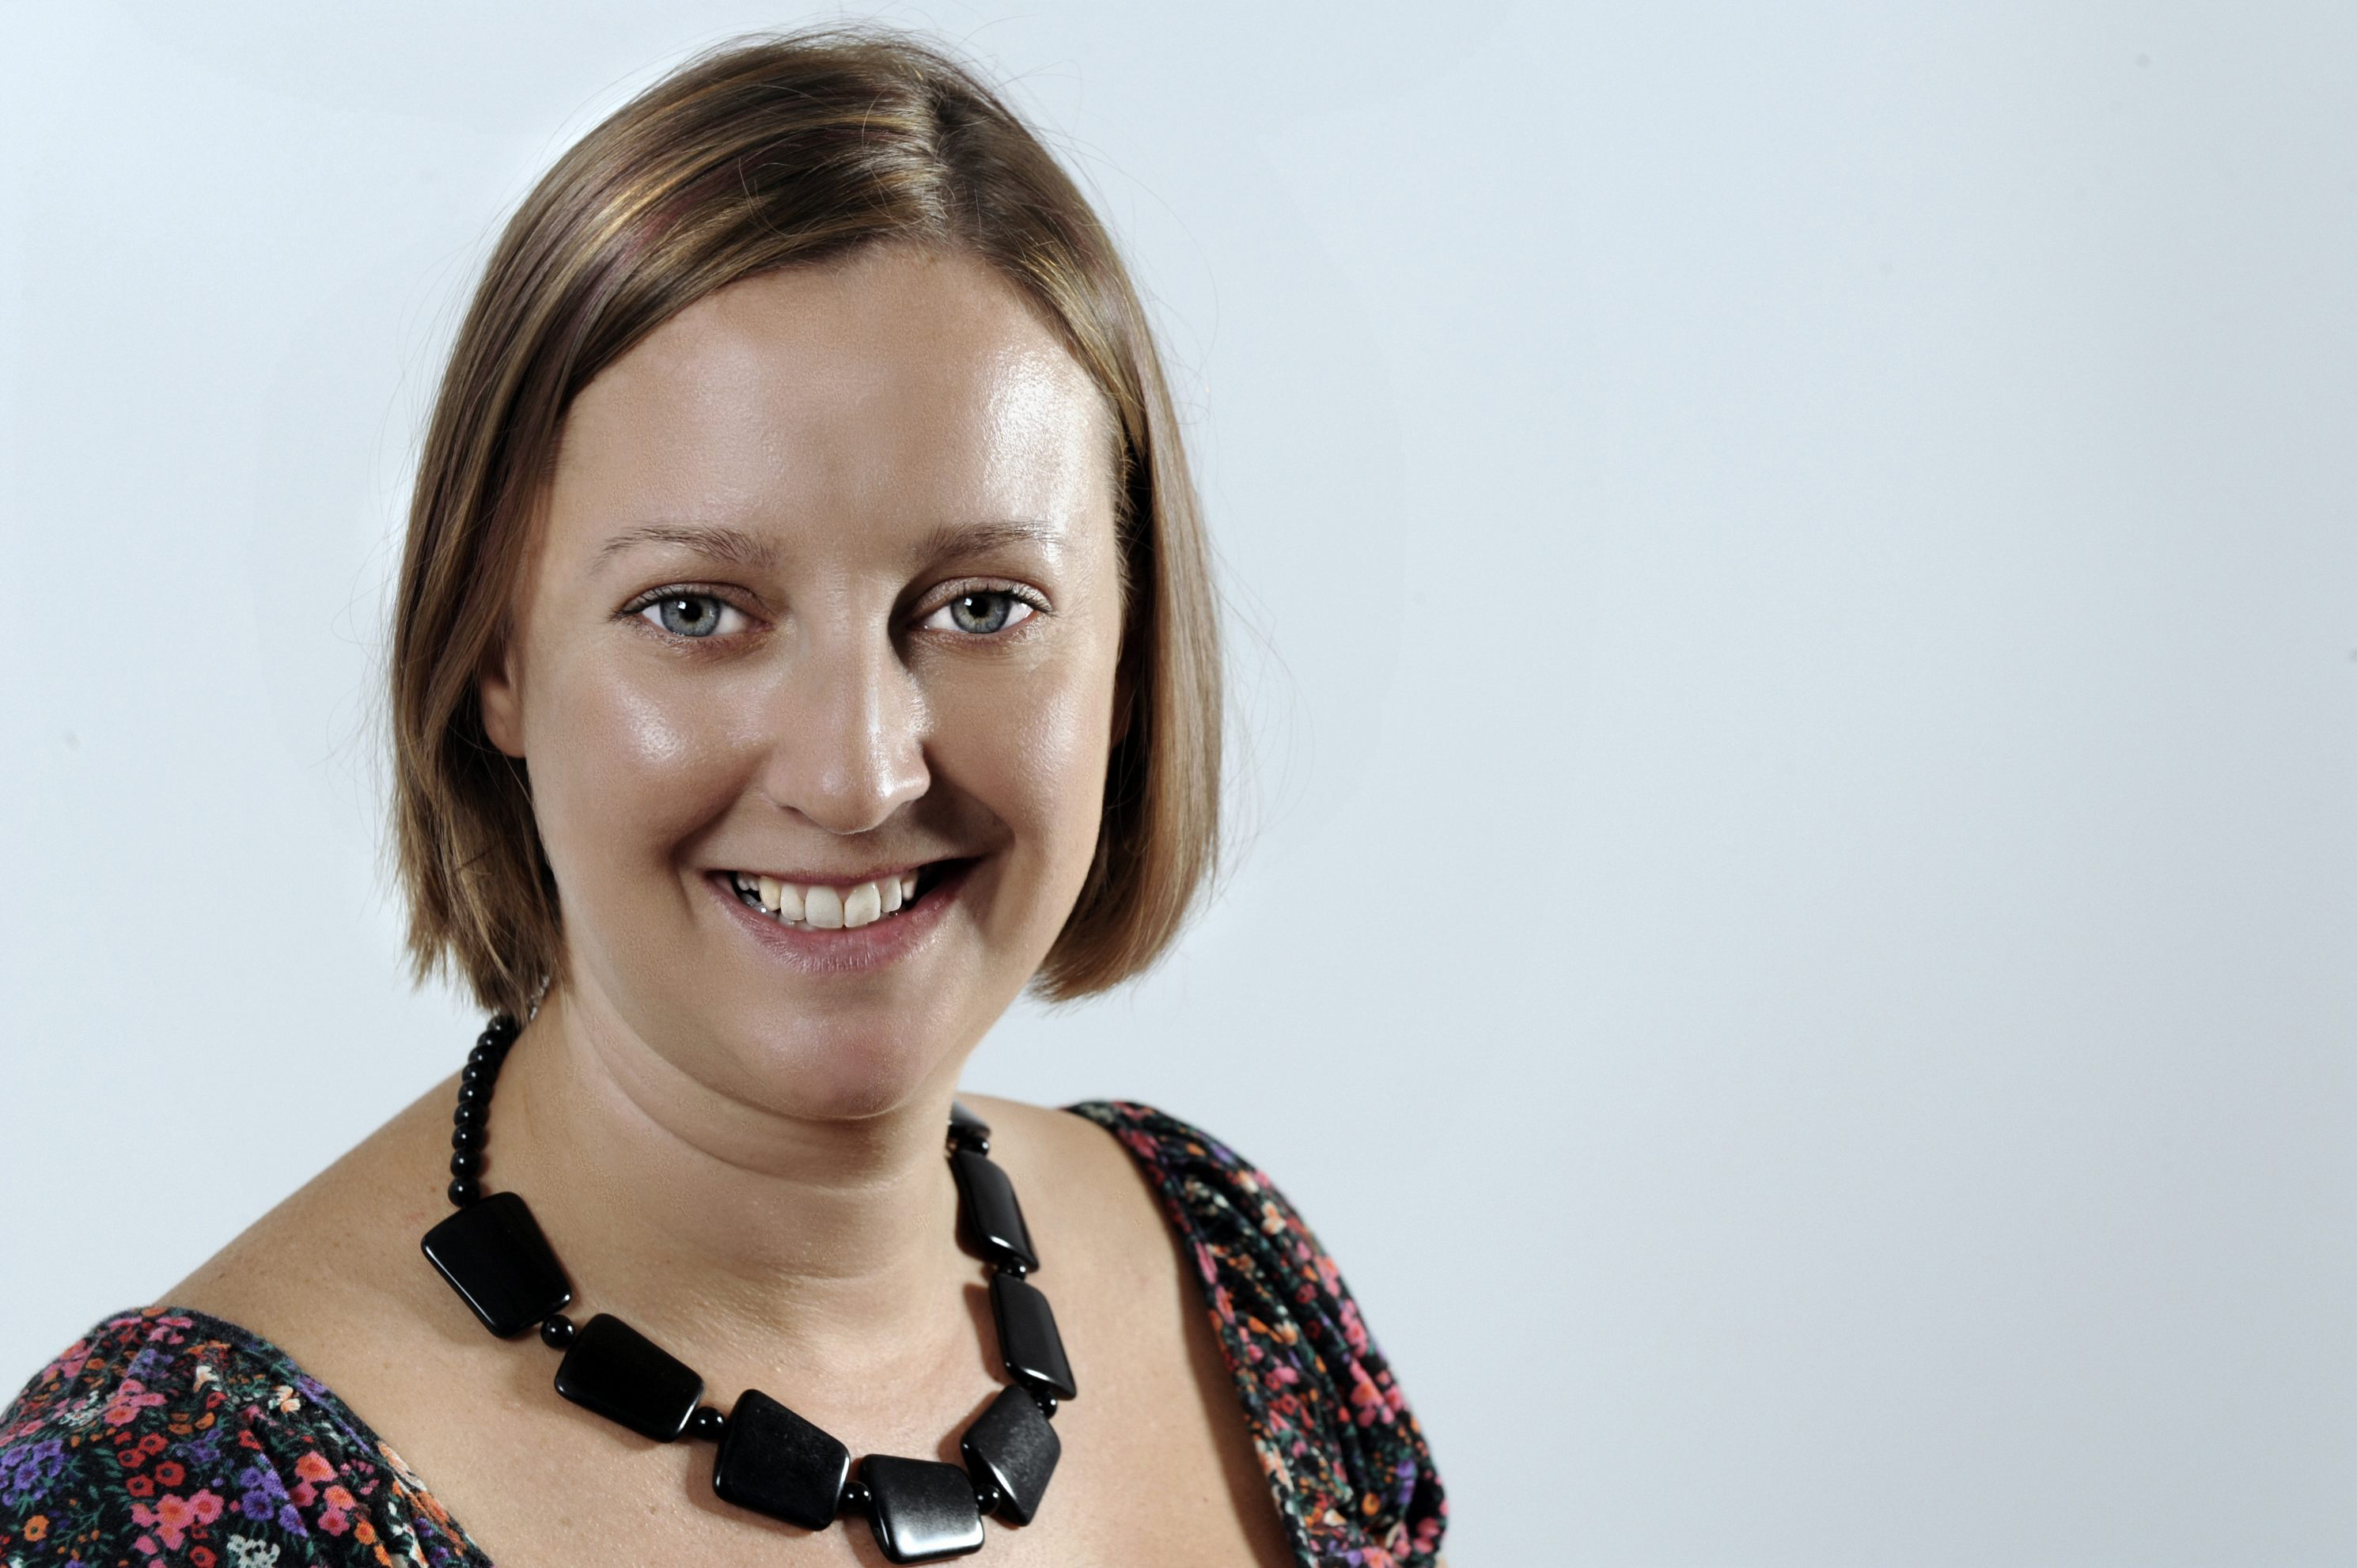 Photo of a white woman with a mousy brown straight bob. It is a professional head shot with her smiling at the camera, wearing a chunky black necklace and flowery t-shirt. The background is a light grey/blue blank studio.